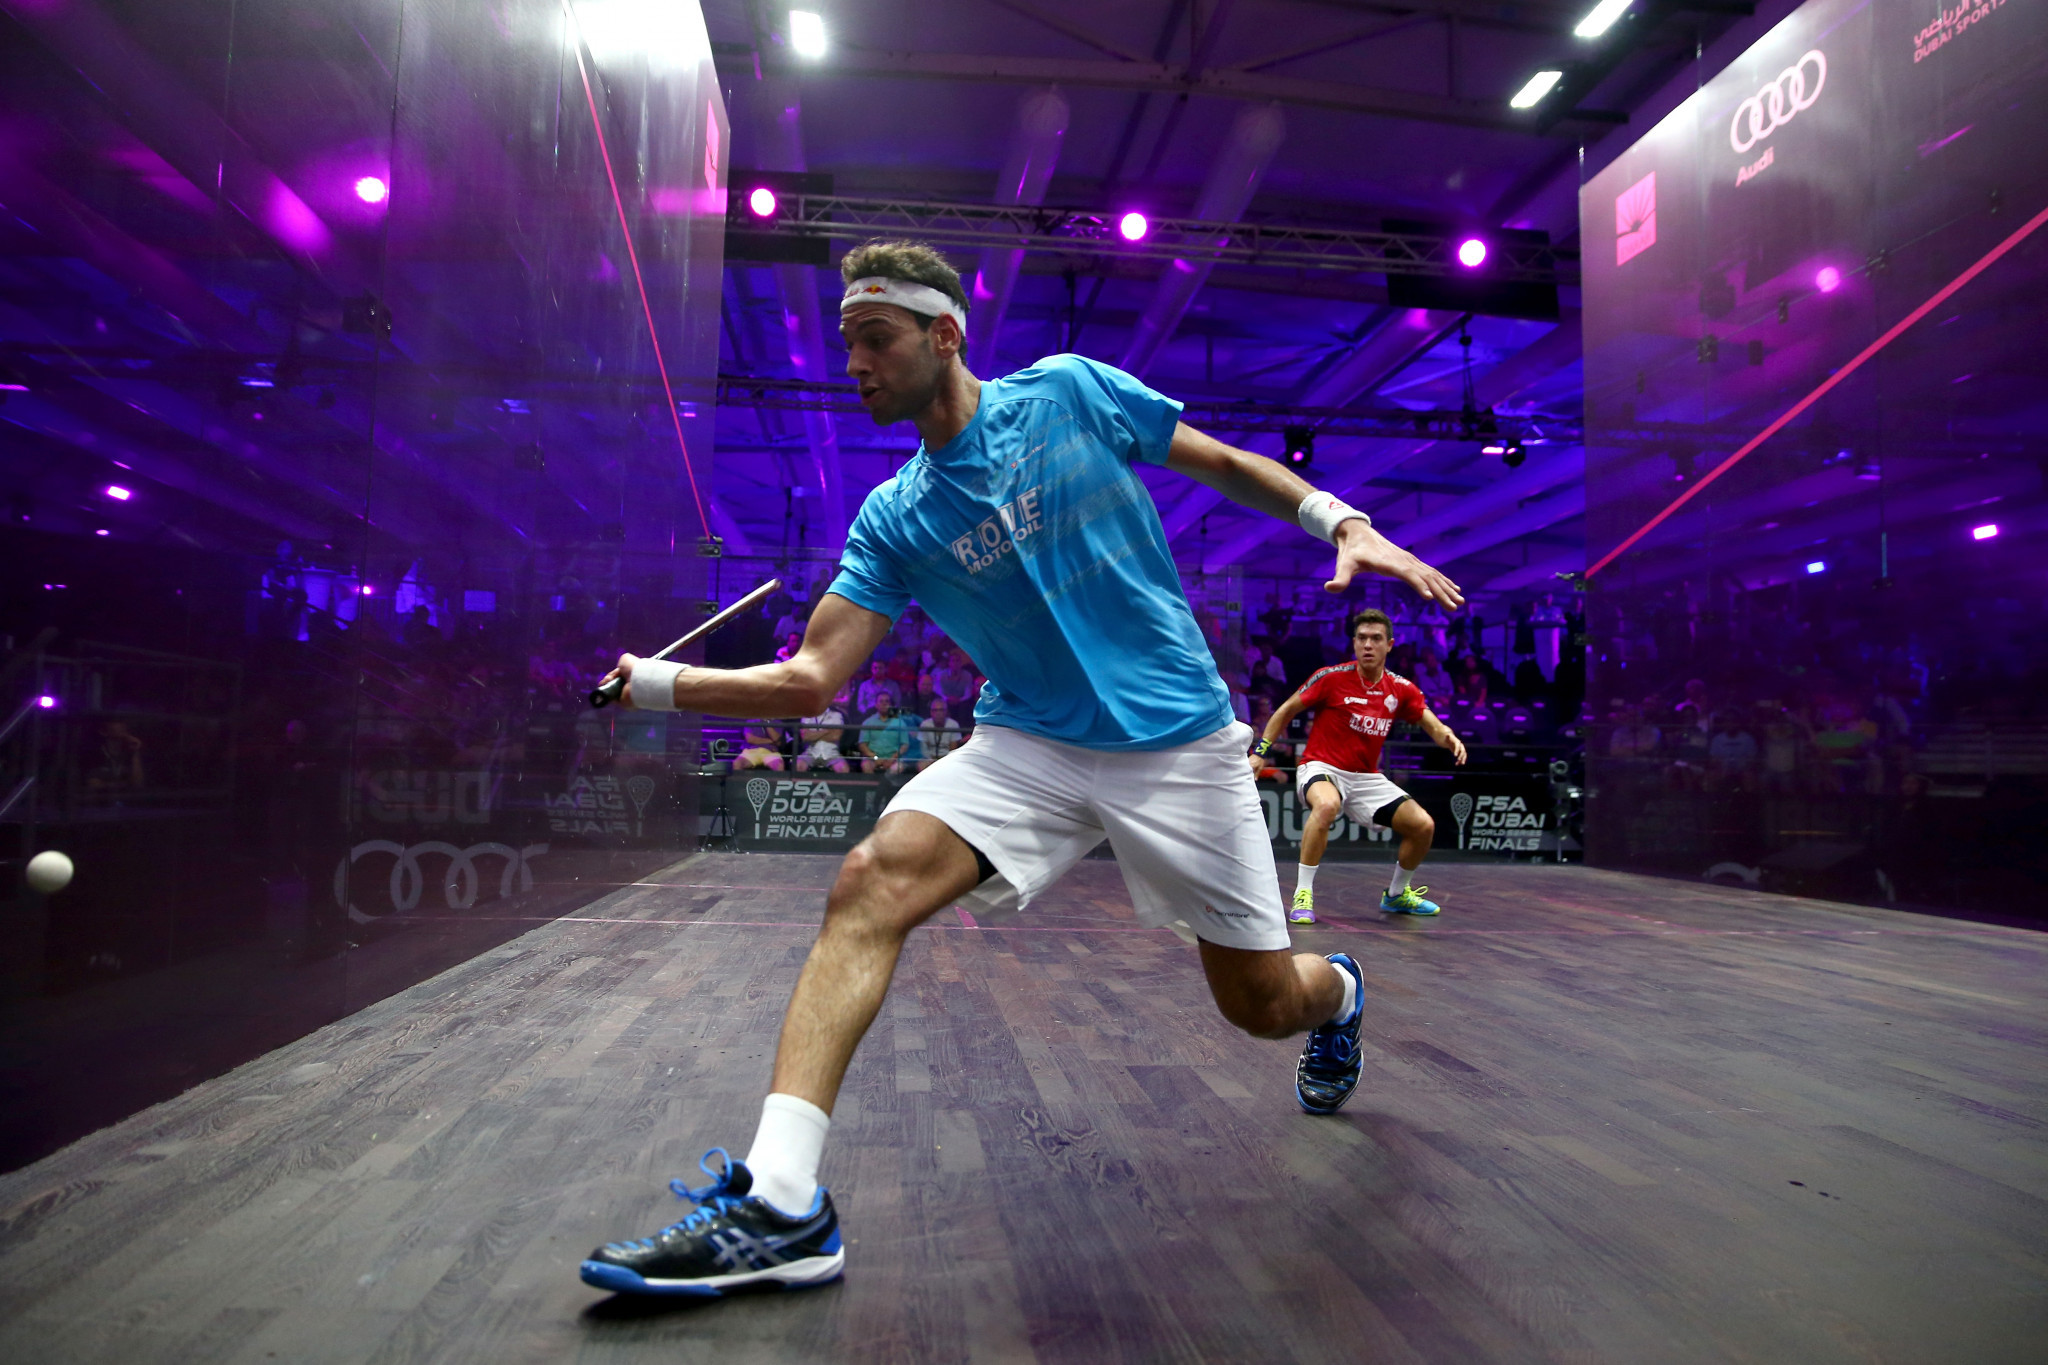 Home top seeds Elshorbagy and El Sherbini make winning starts at El Gouna International